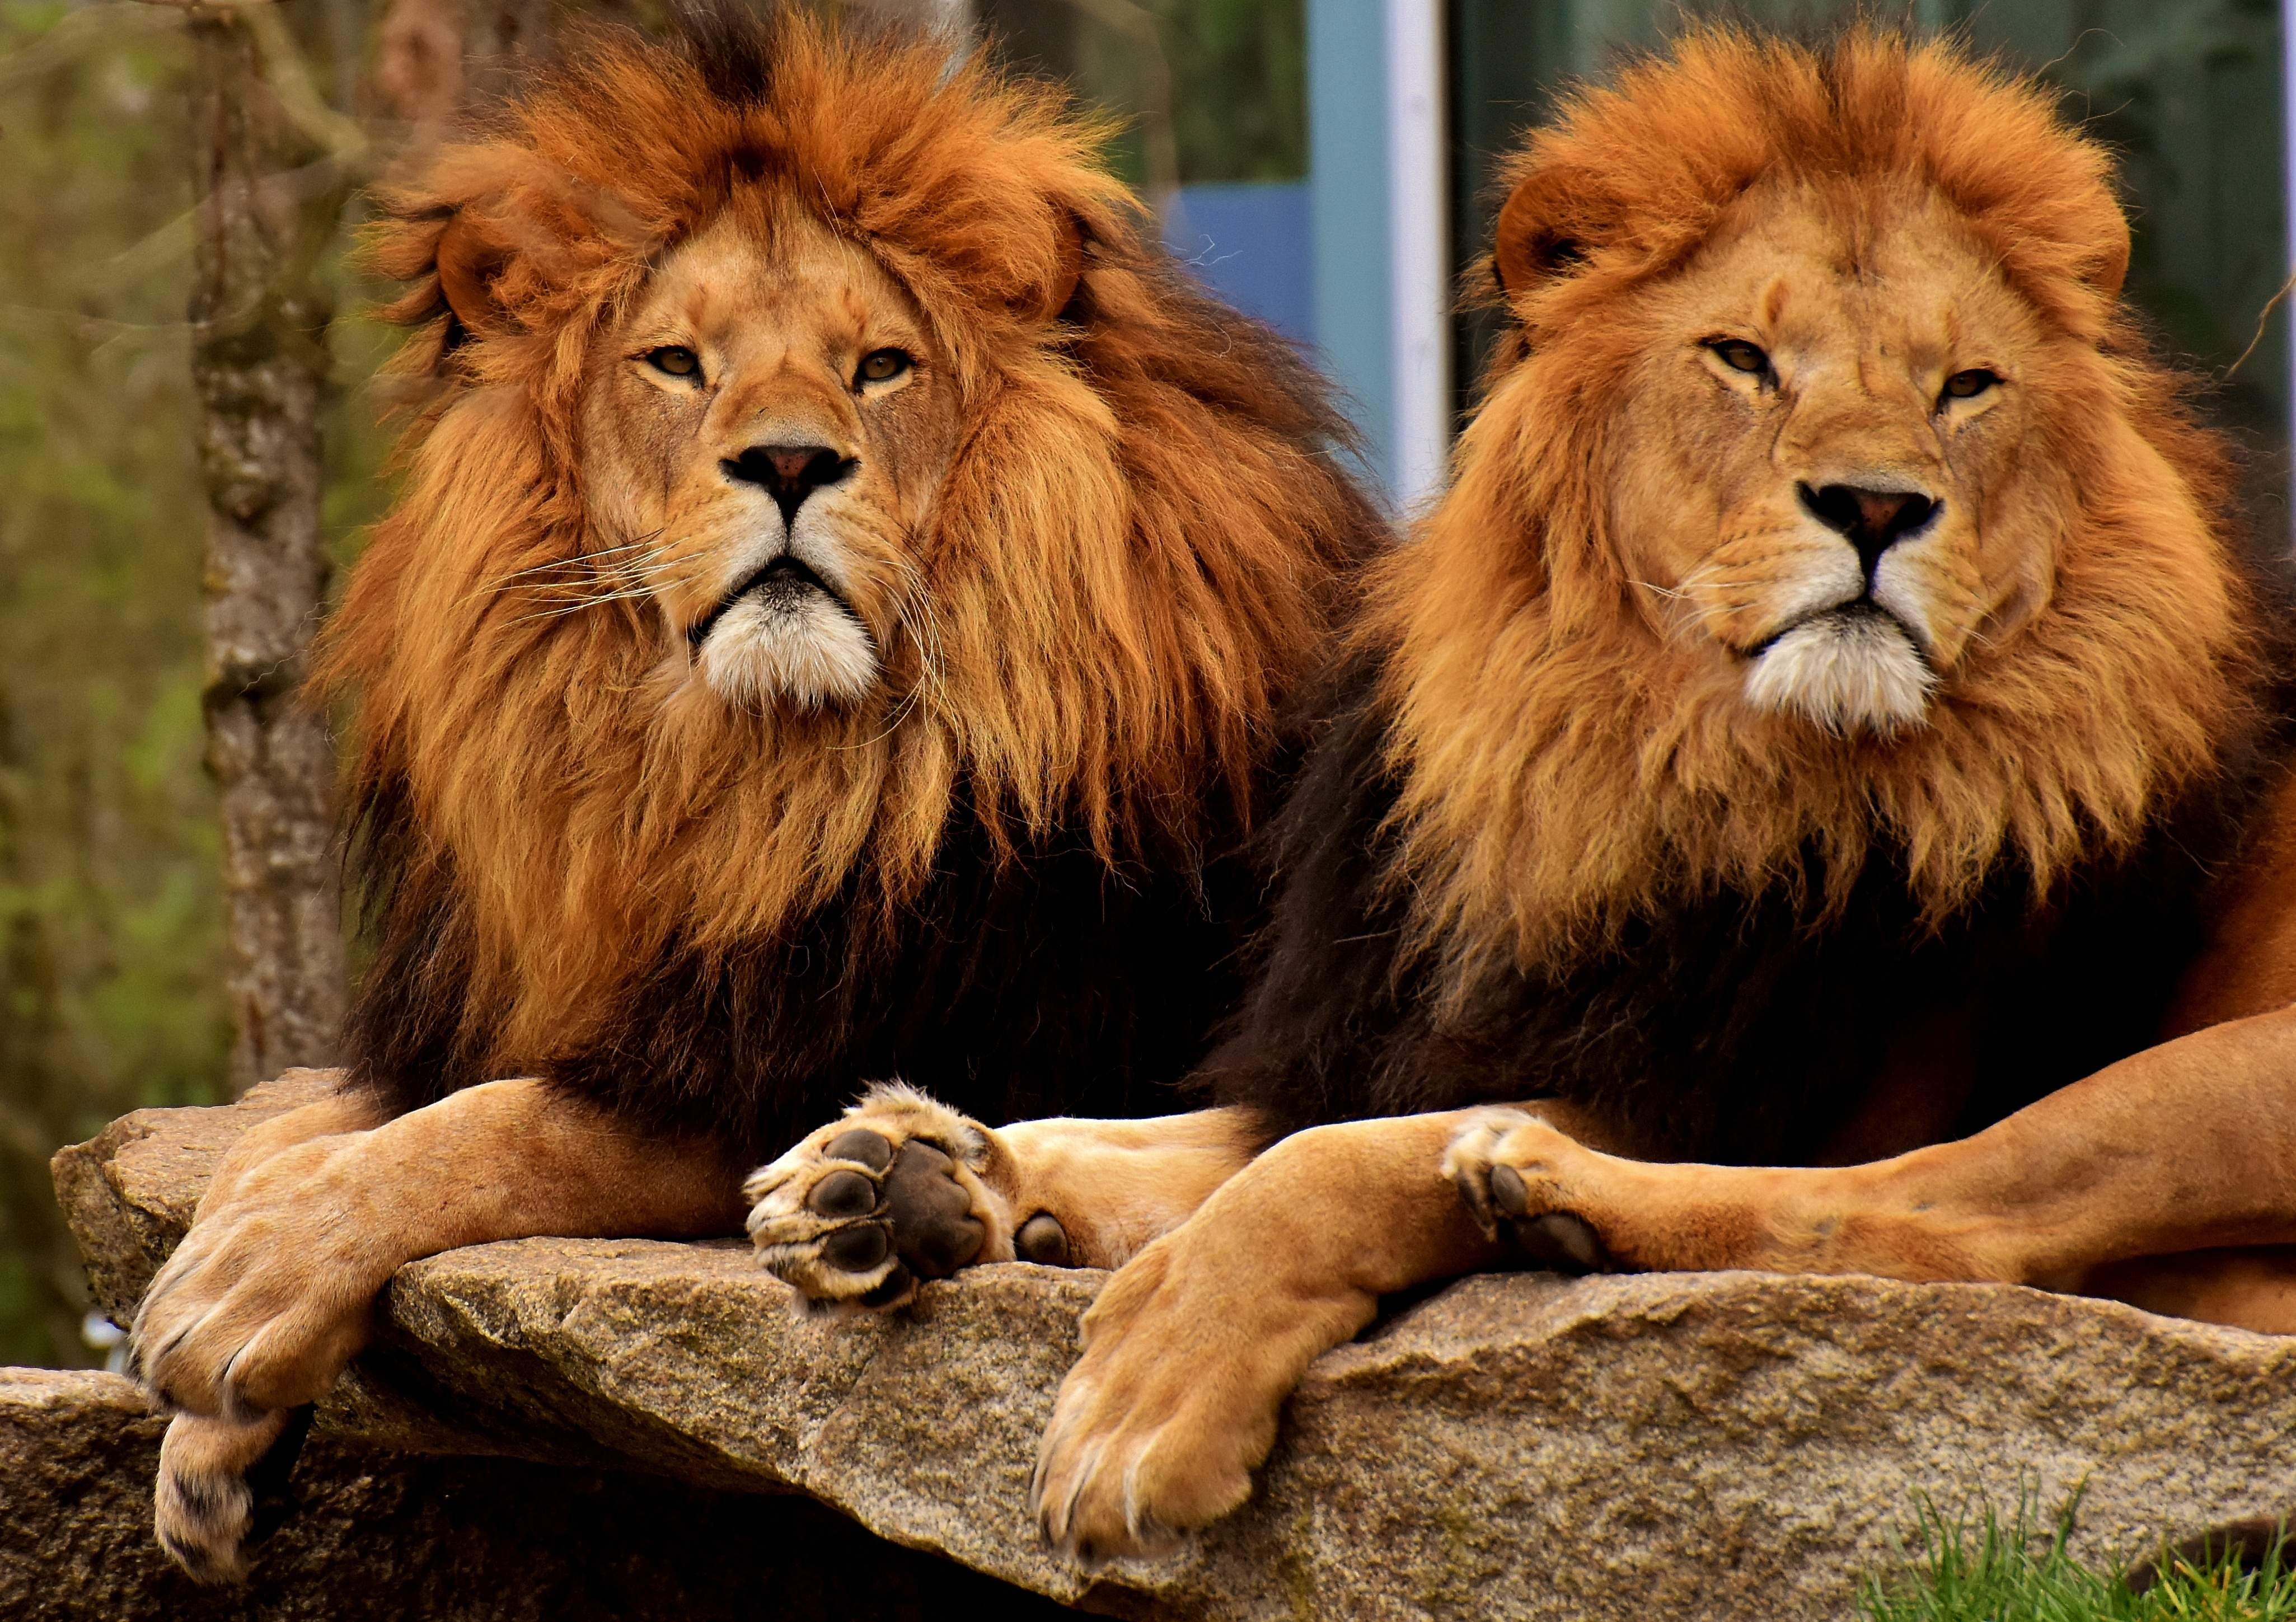 63034 download wallpaper Animals, Predators, Muzzle, Mane, King Of Beasts, King Of The Beasts, Lions screensavers and pictures for free